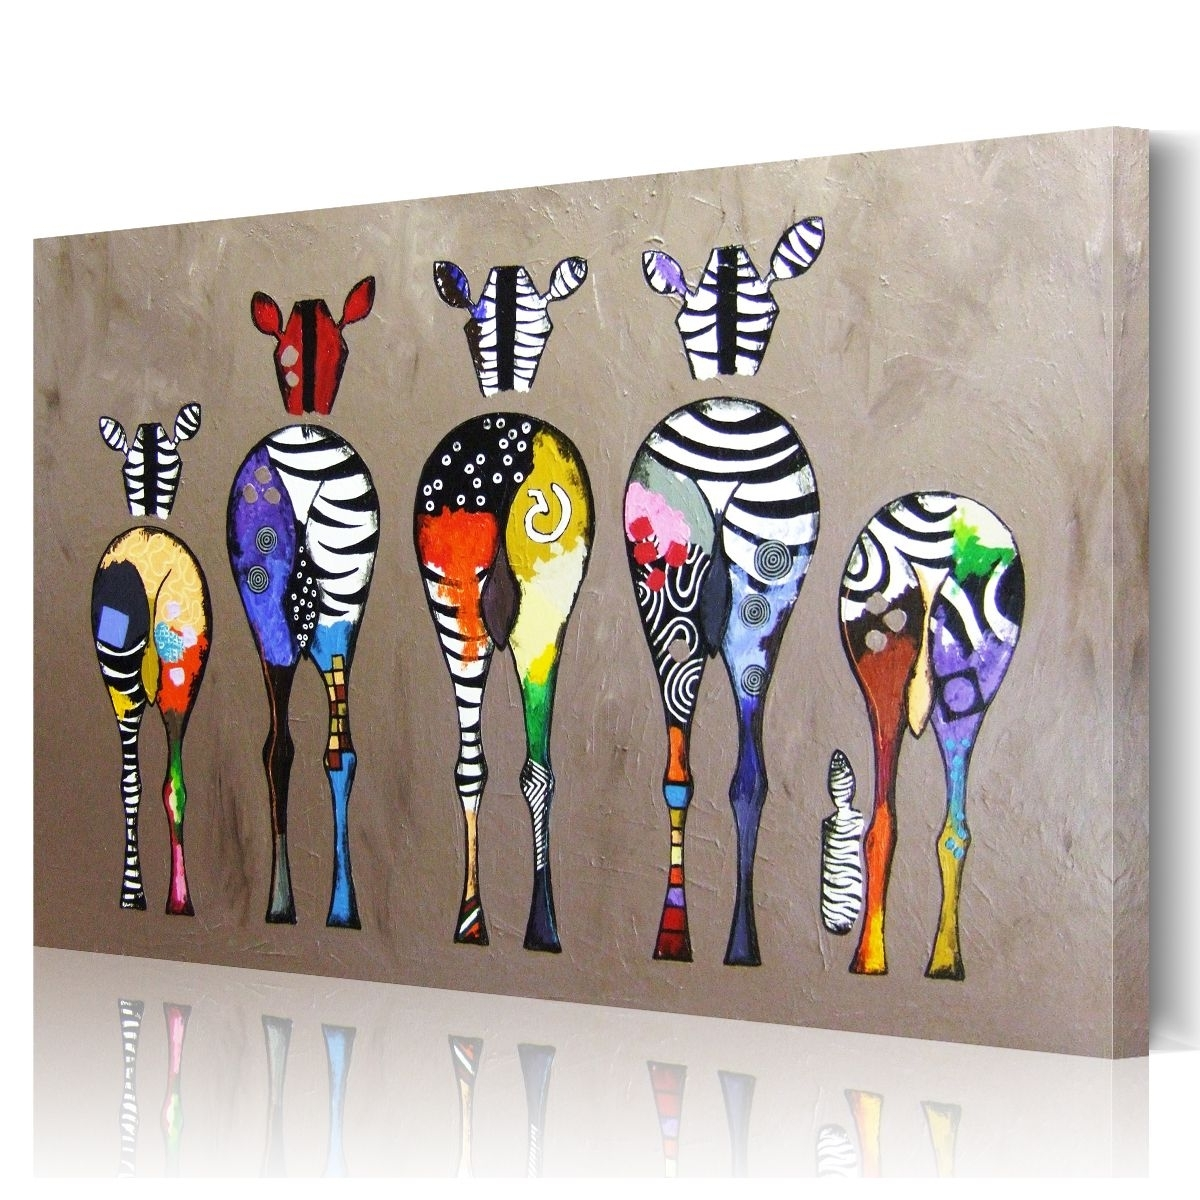 Hd Abstract Zebra Canvas Prints Paintings Wall Art Home Decor With Regard To Newest Zebra Canvas Wall Art (Gallery 12 of 20)